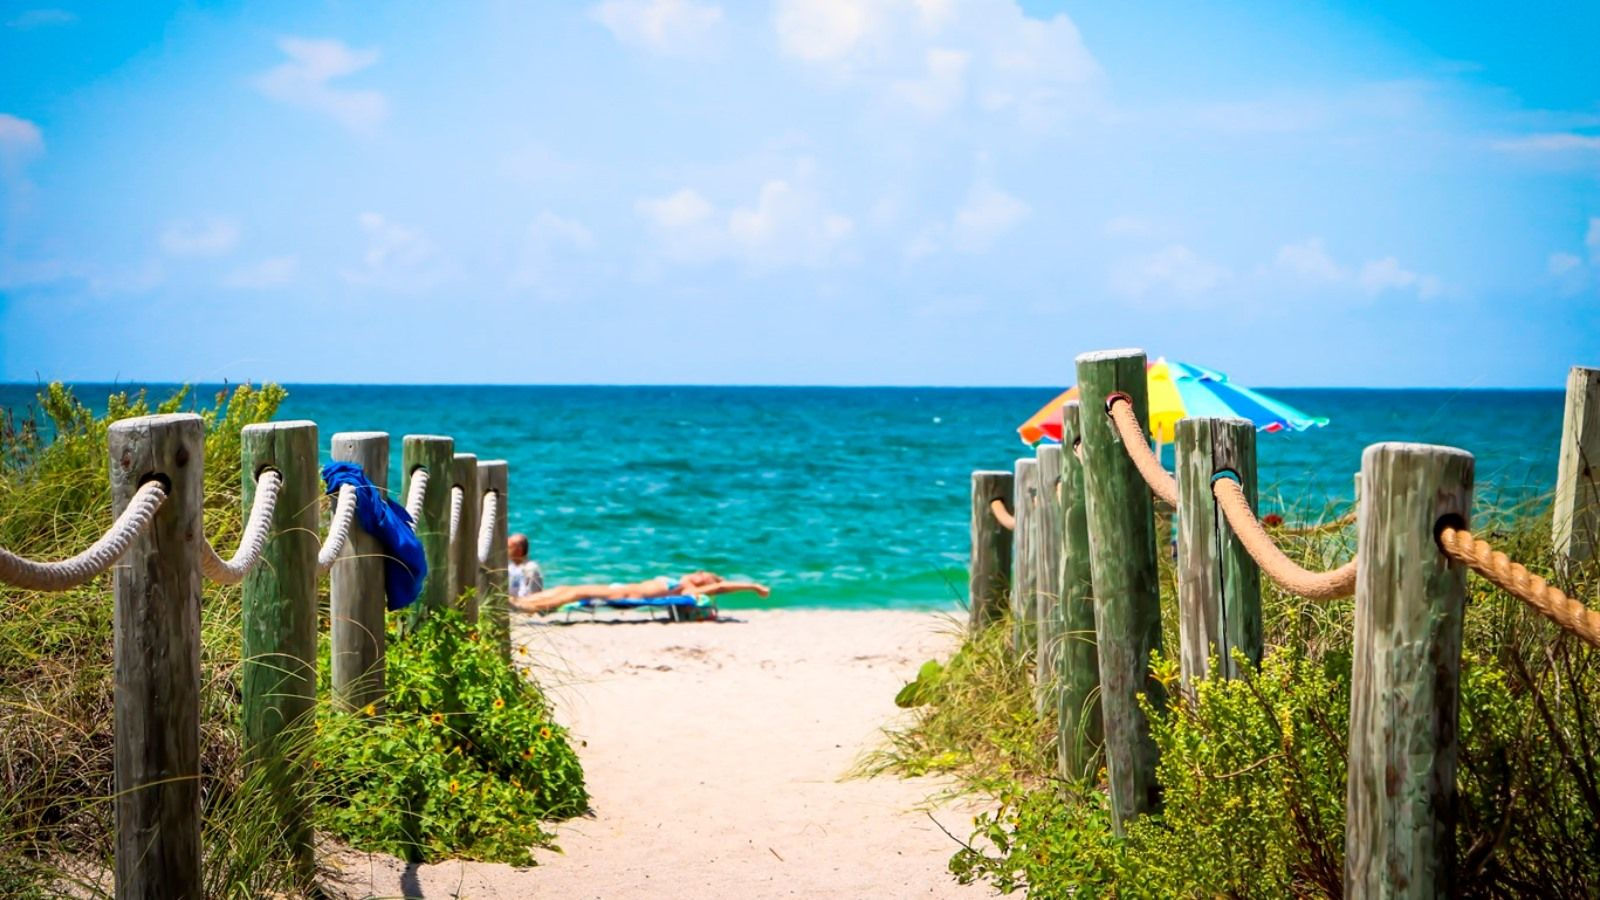 Sarasota attractions - Blind Pass Beach Park - The Westin Sarasota